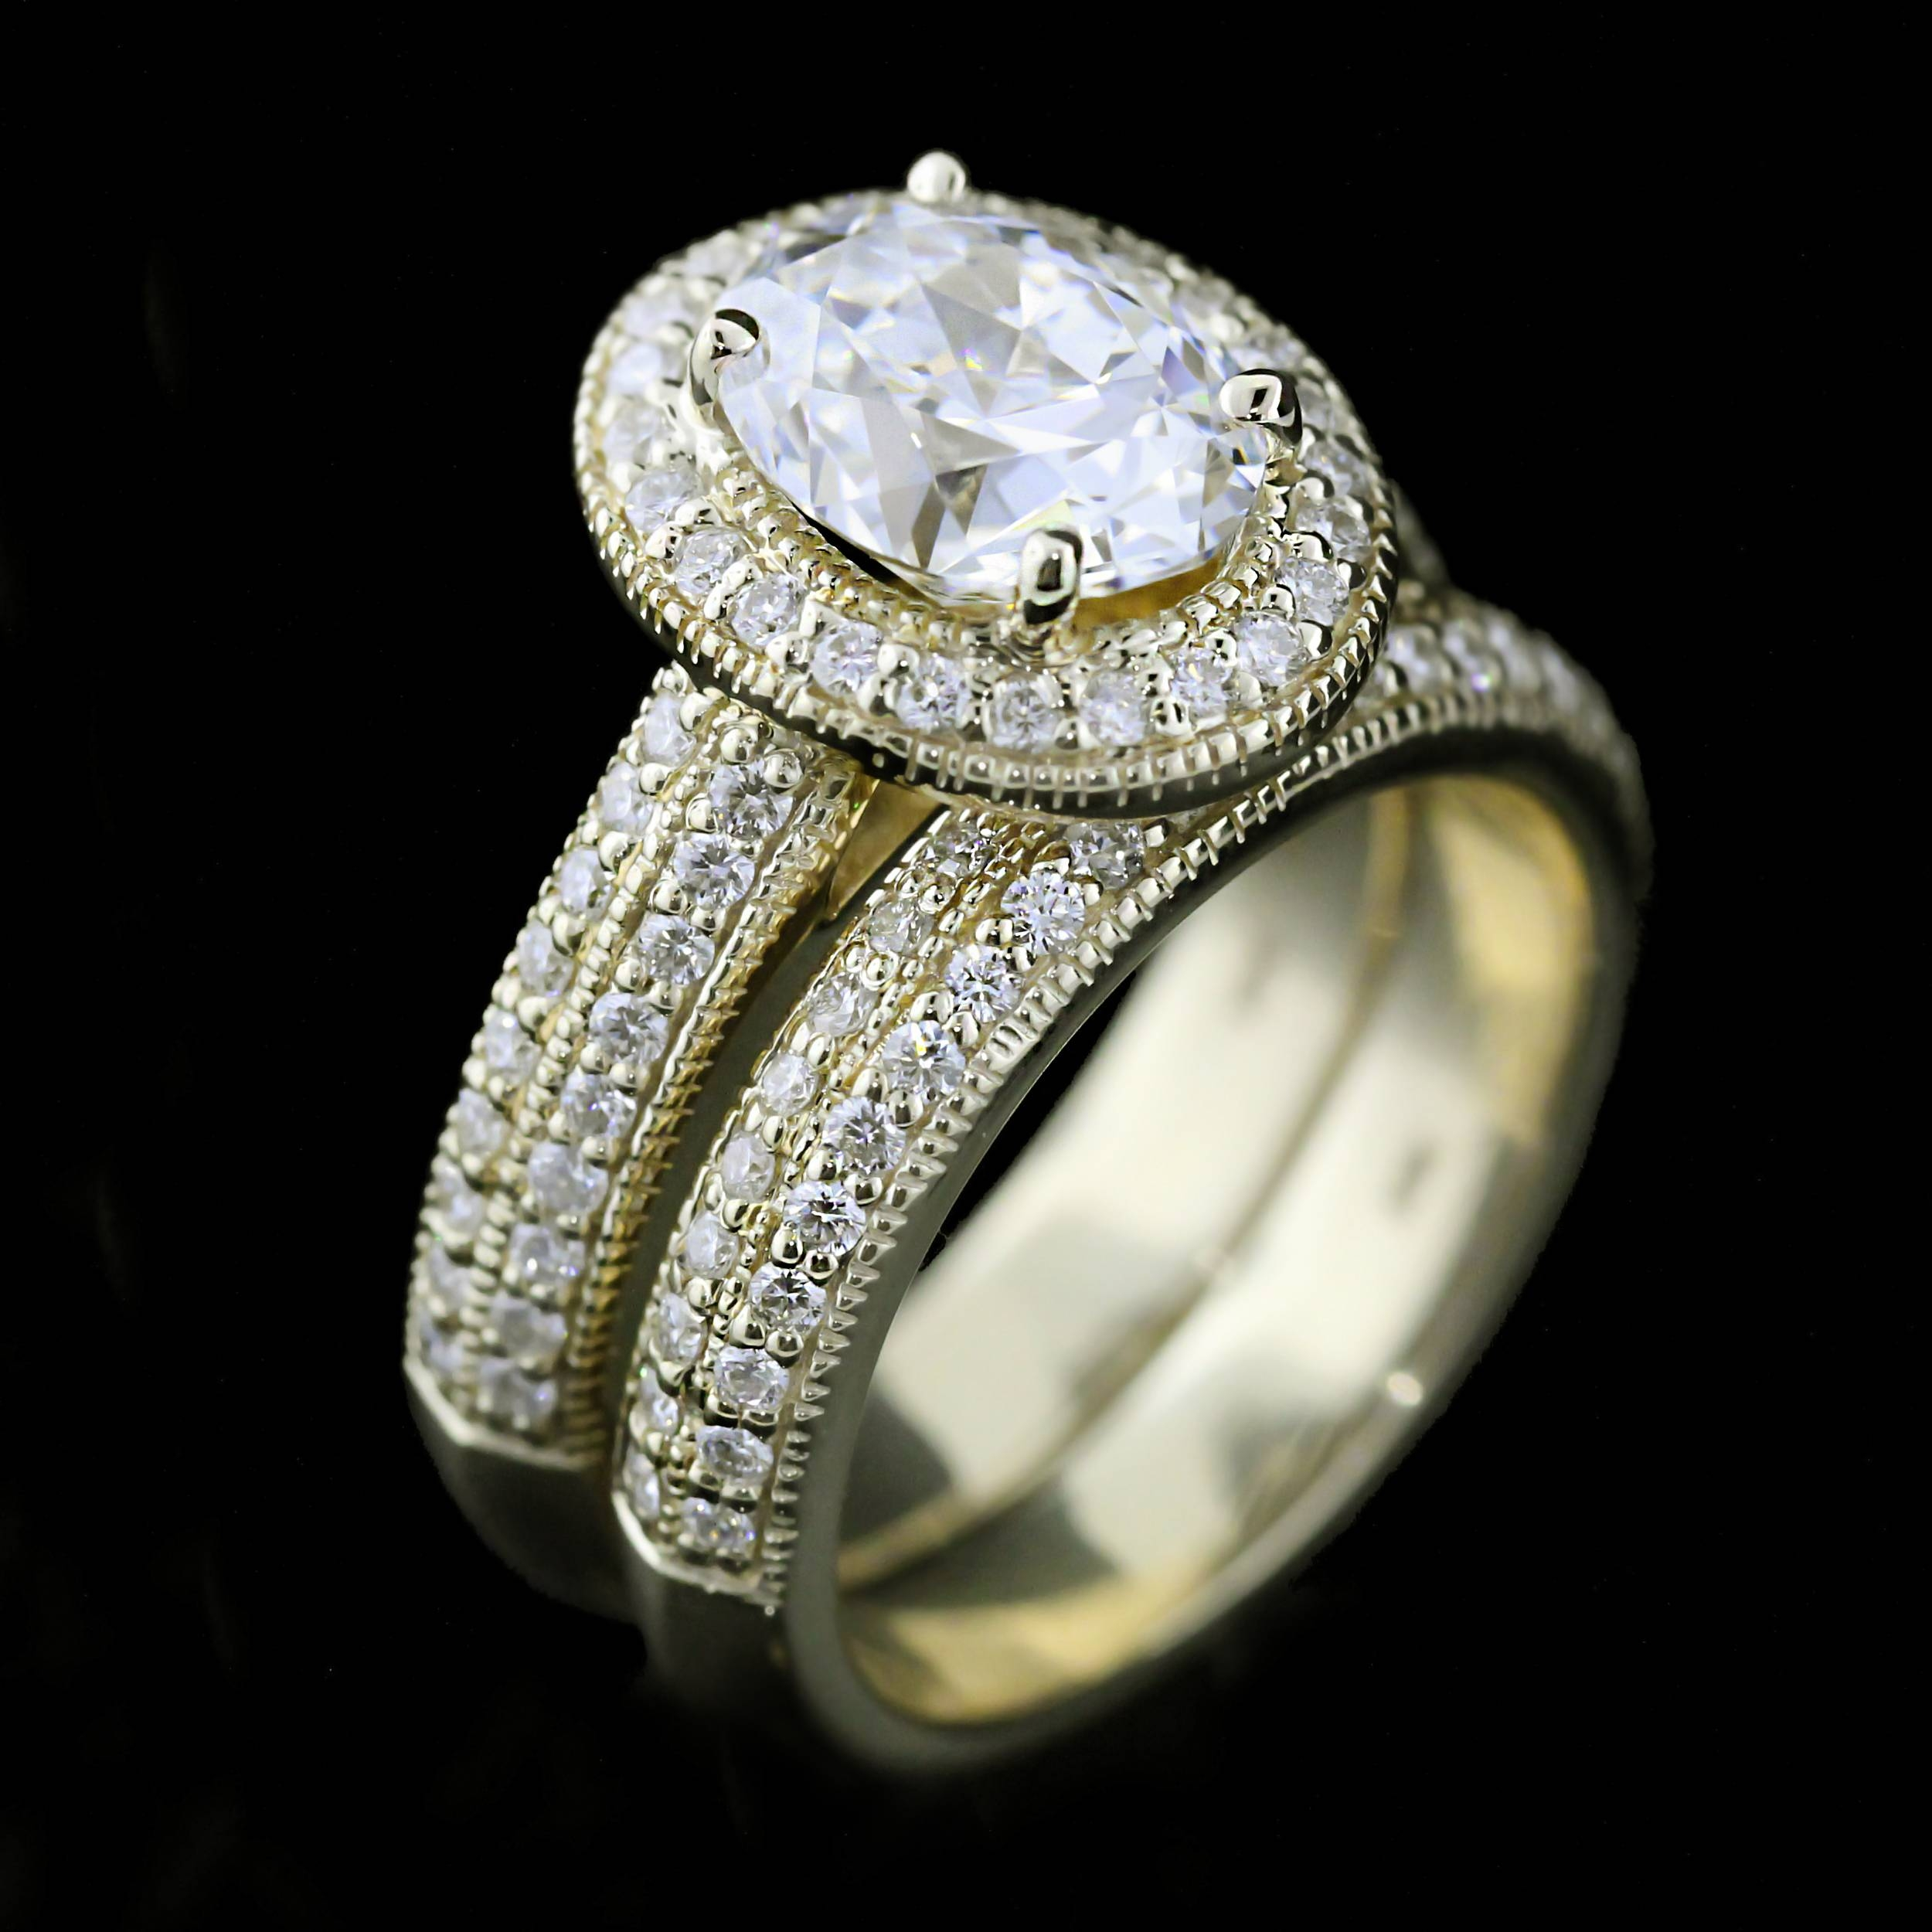 ring subsampling jewellery tiffany upscale gay man scale ok de best hd editor rings diamonds beers men engagement bridal boucheron false crop quatre diamond the article for with made